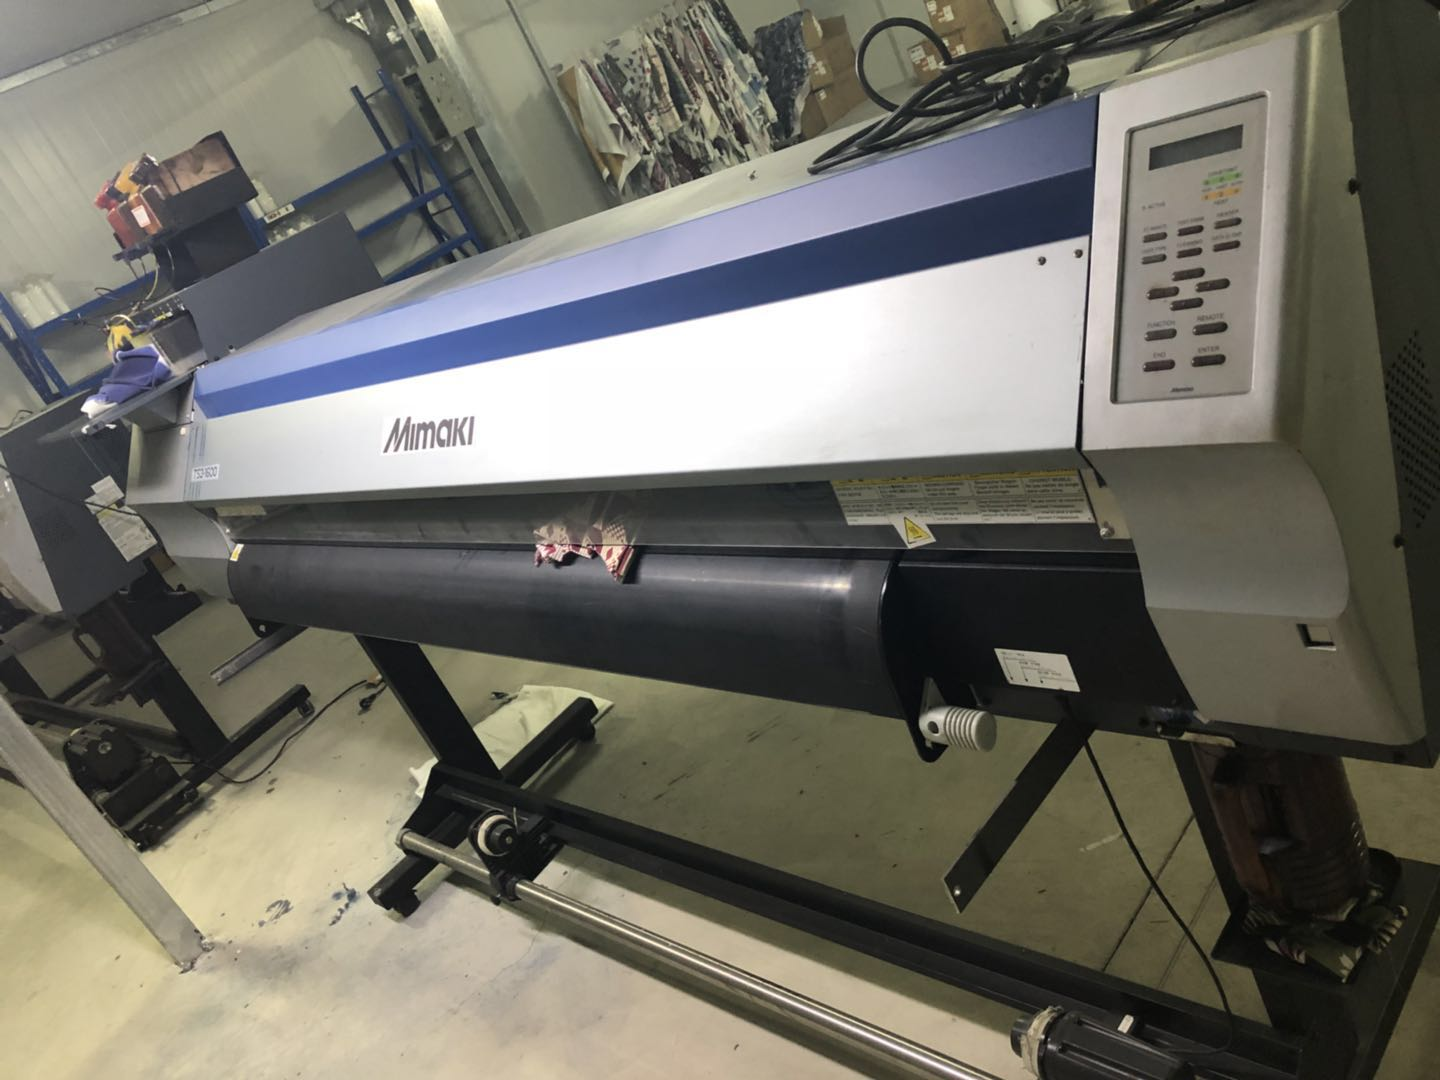 Picture of Second hand--Mimaki TS3-1600 Dye Sublimation Printer